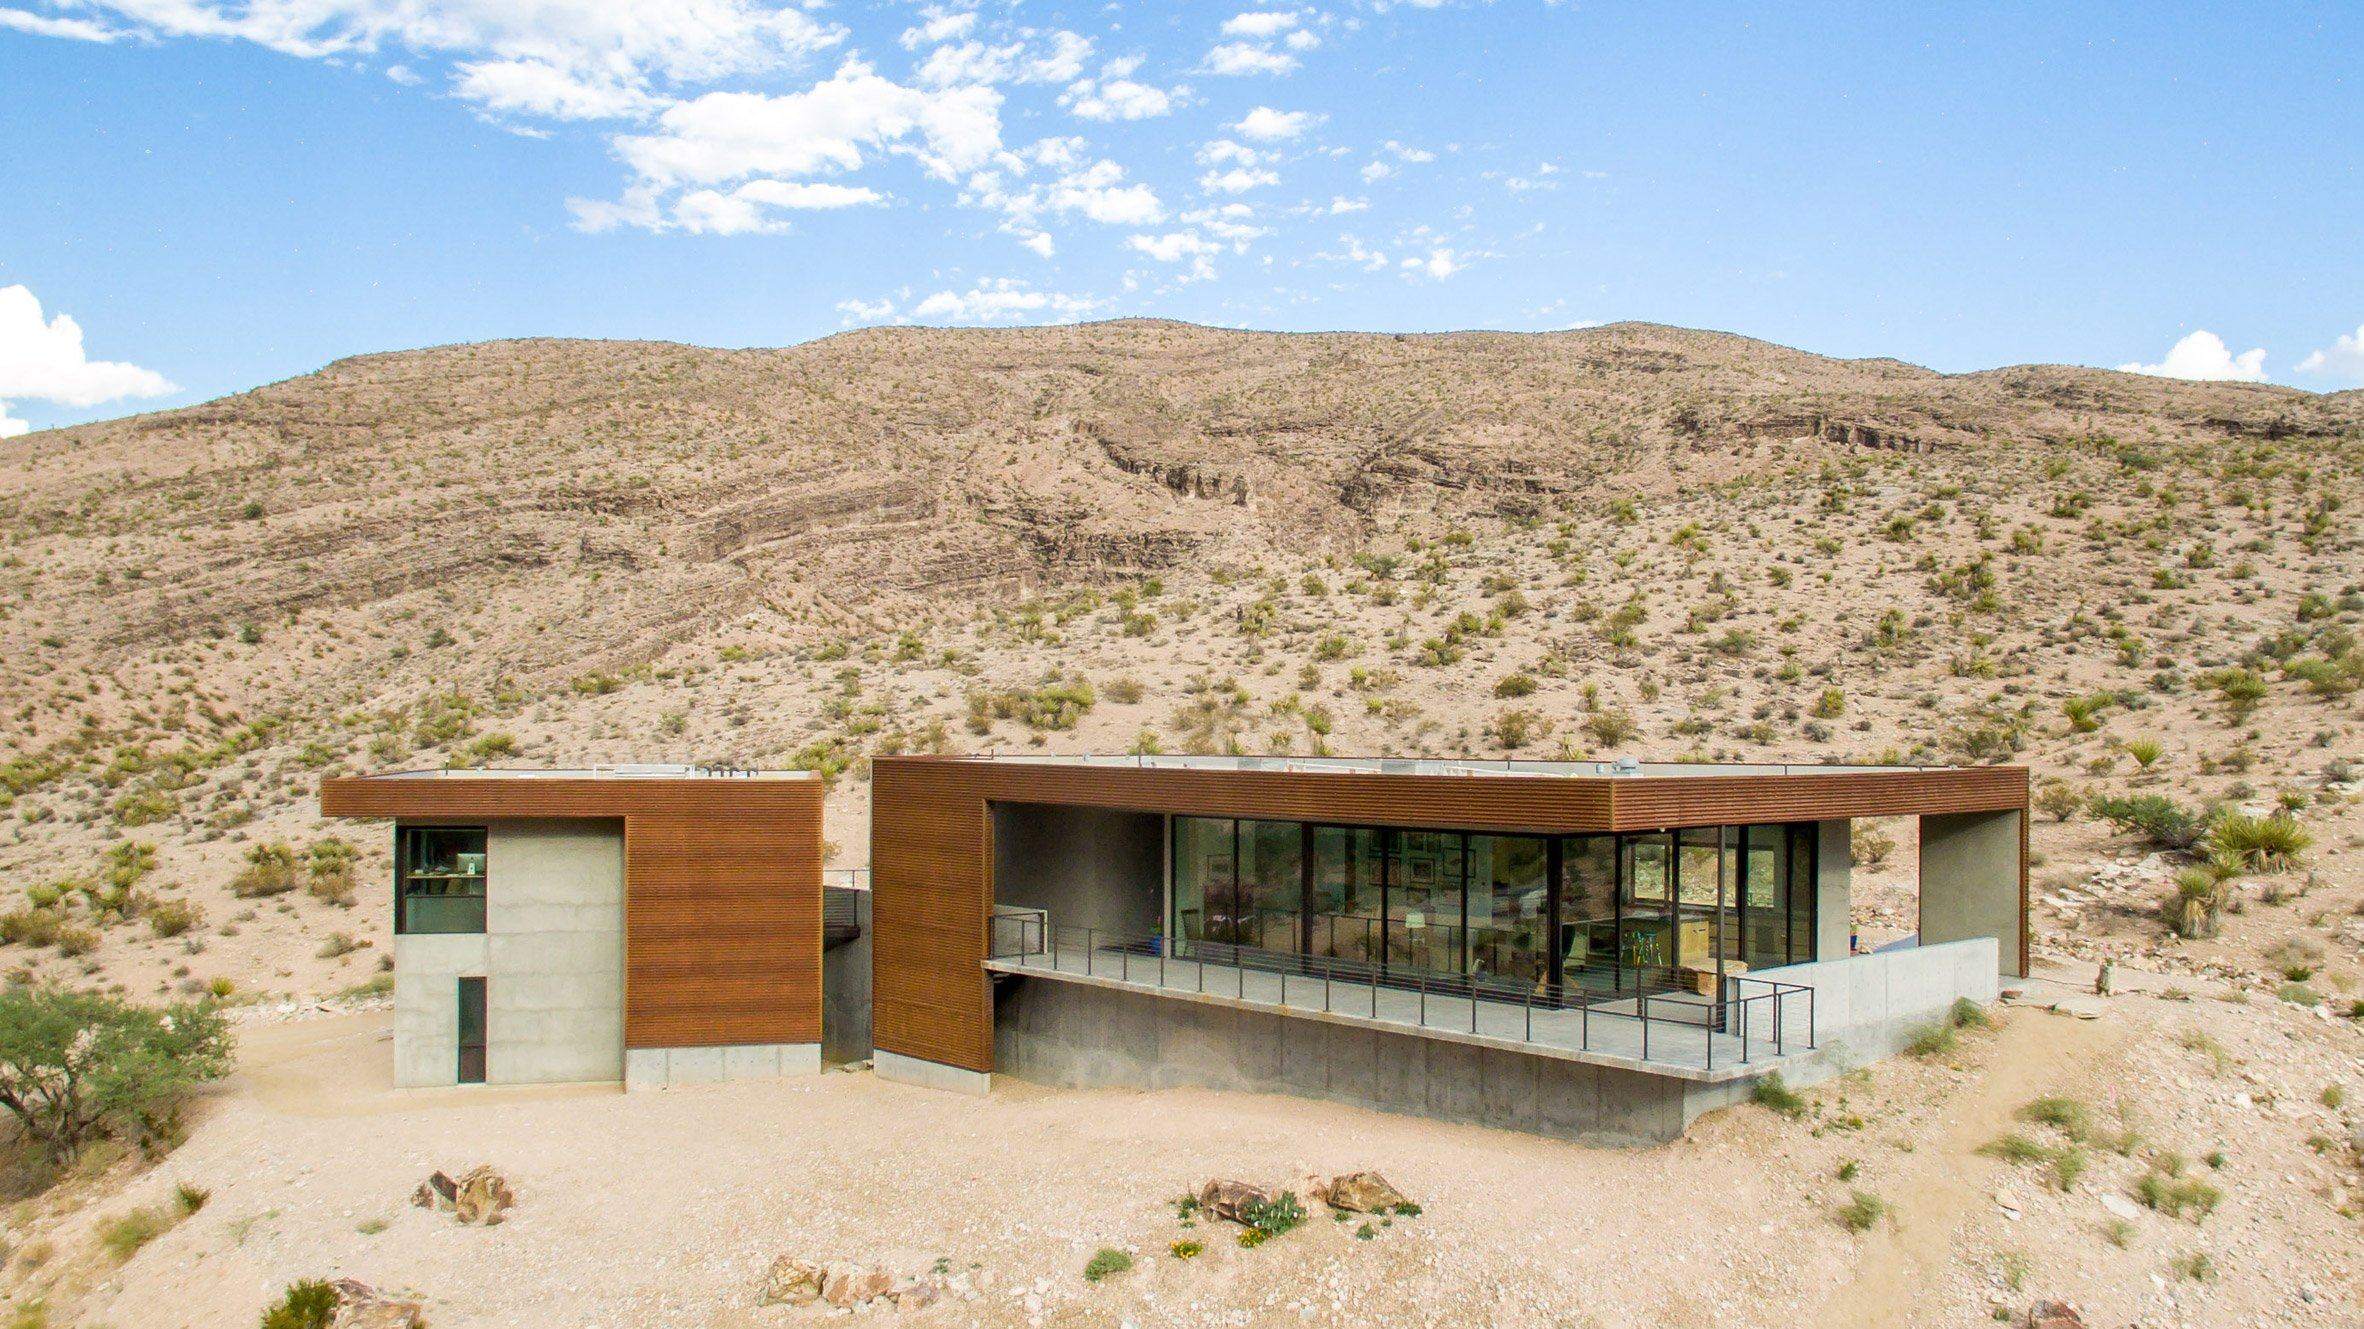 Hoogland Architecture designs Arroyo House for stark desert site in southern Nevada